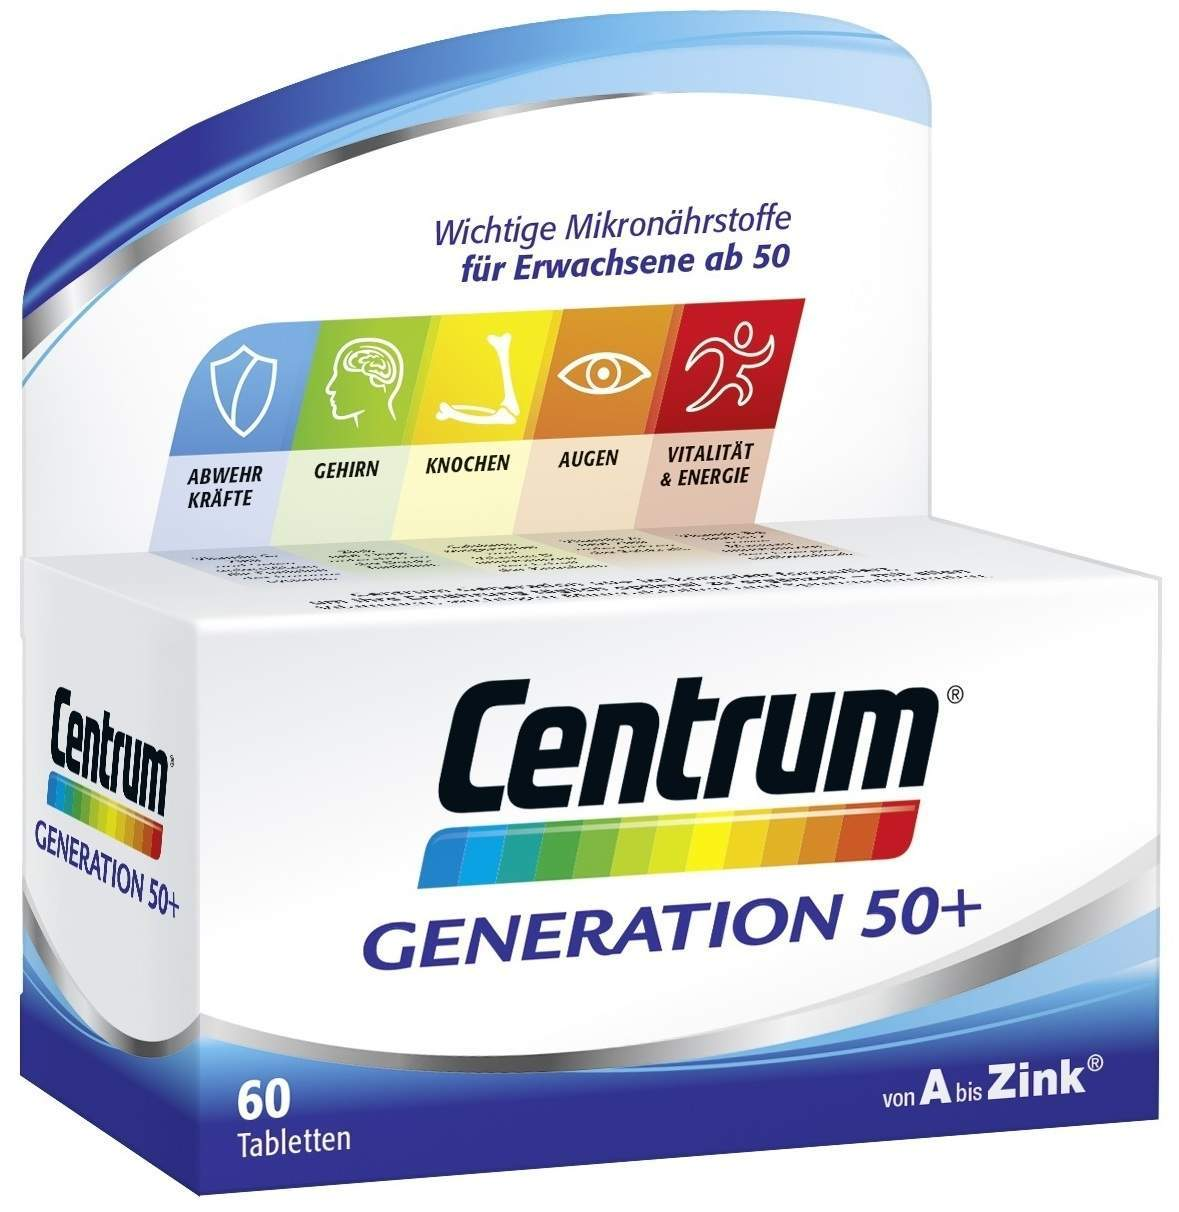 Centrum Generation 50+ 60 Tabletten von Pfizer Consumer Healthcare